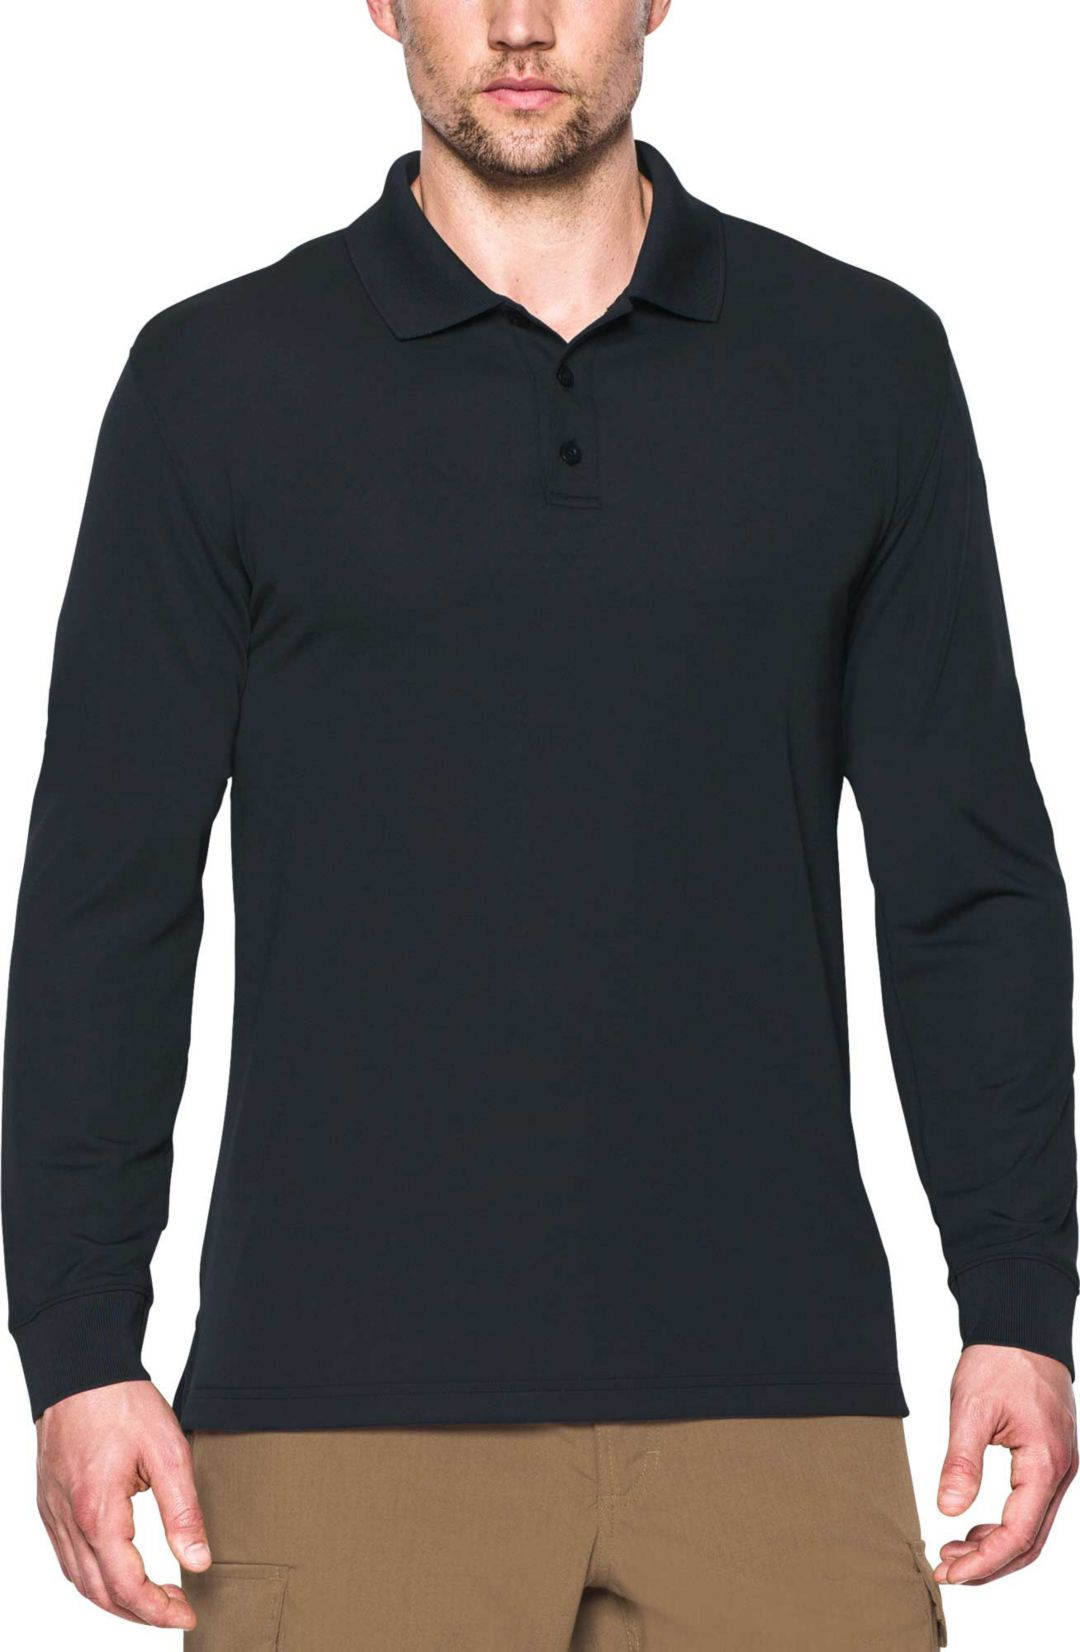 855f9b5e Under Armour Men's Tactical Performance Long Sleeve Shirt